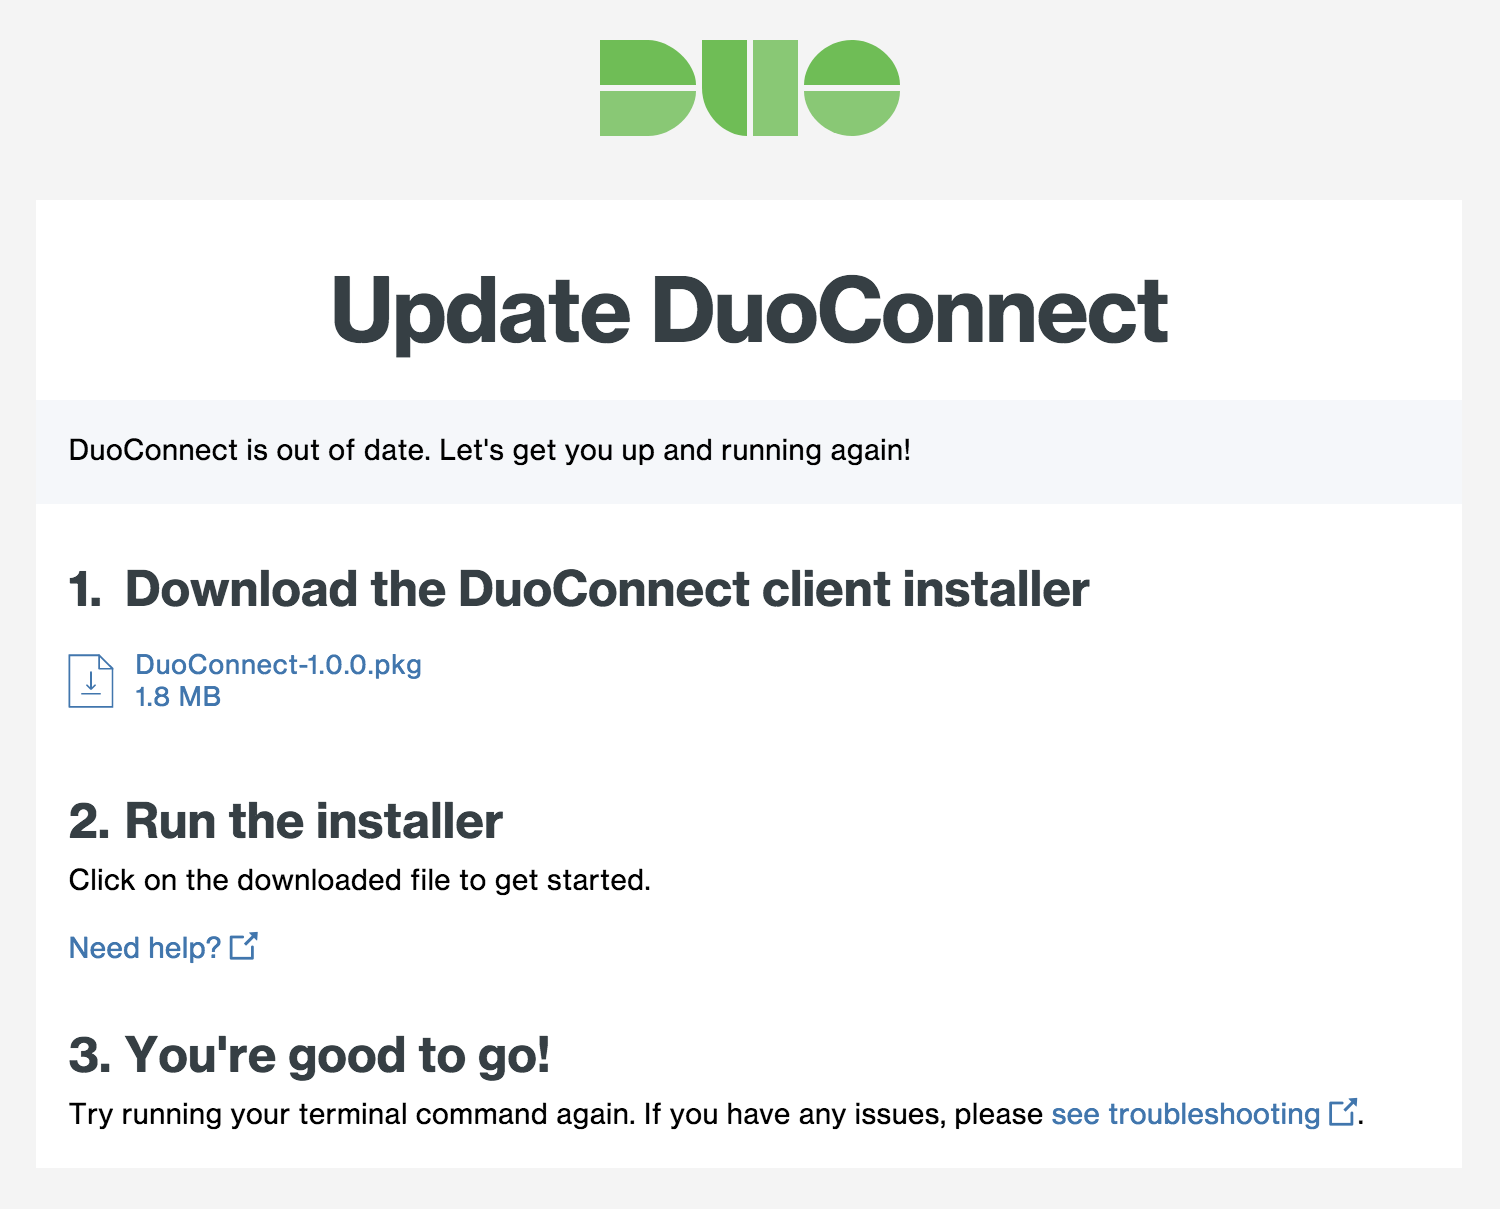 DuoConnect Update Page